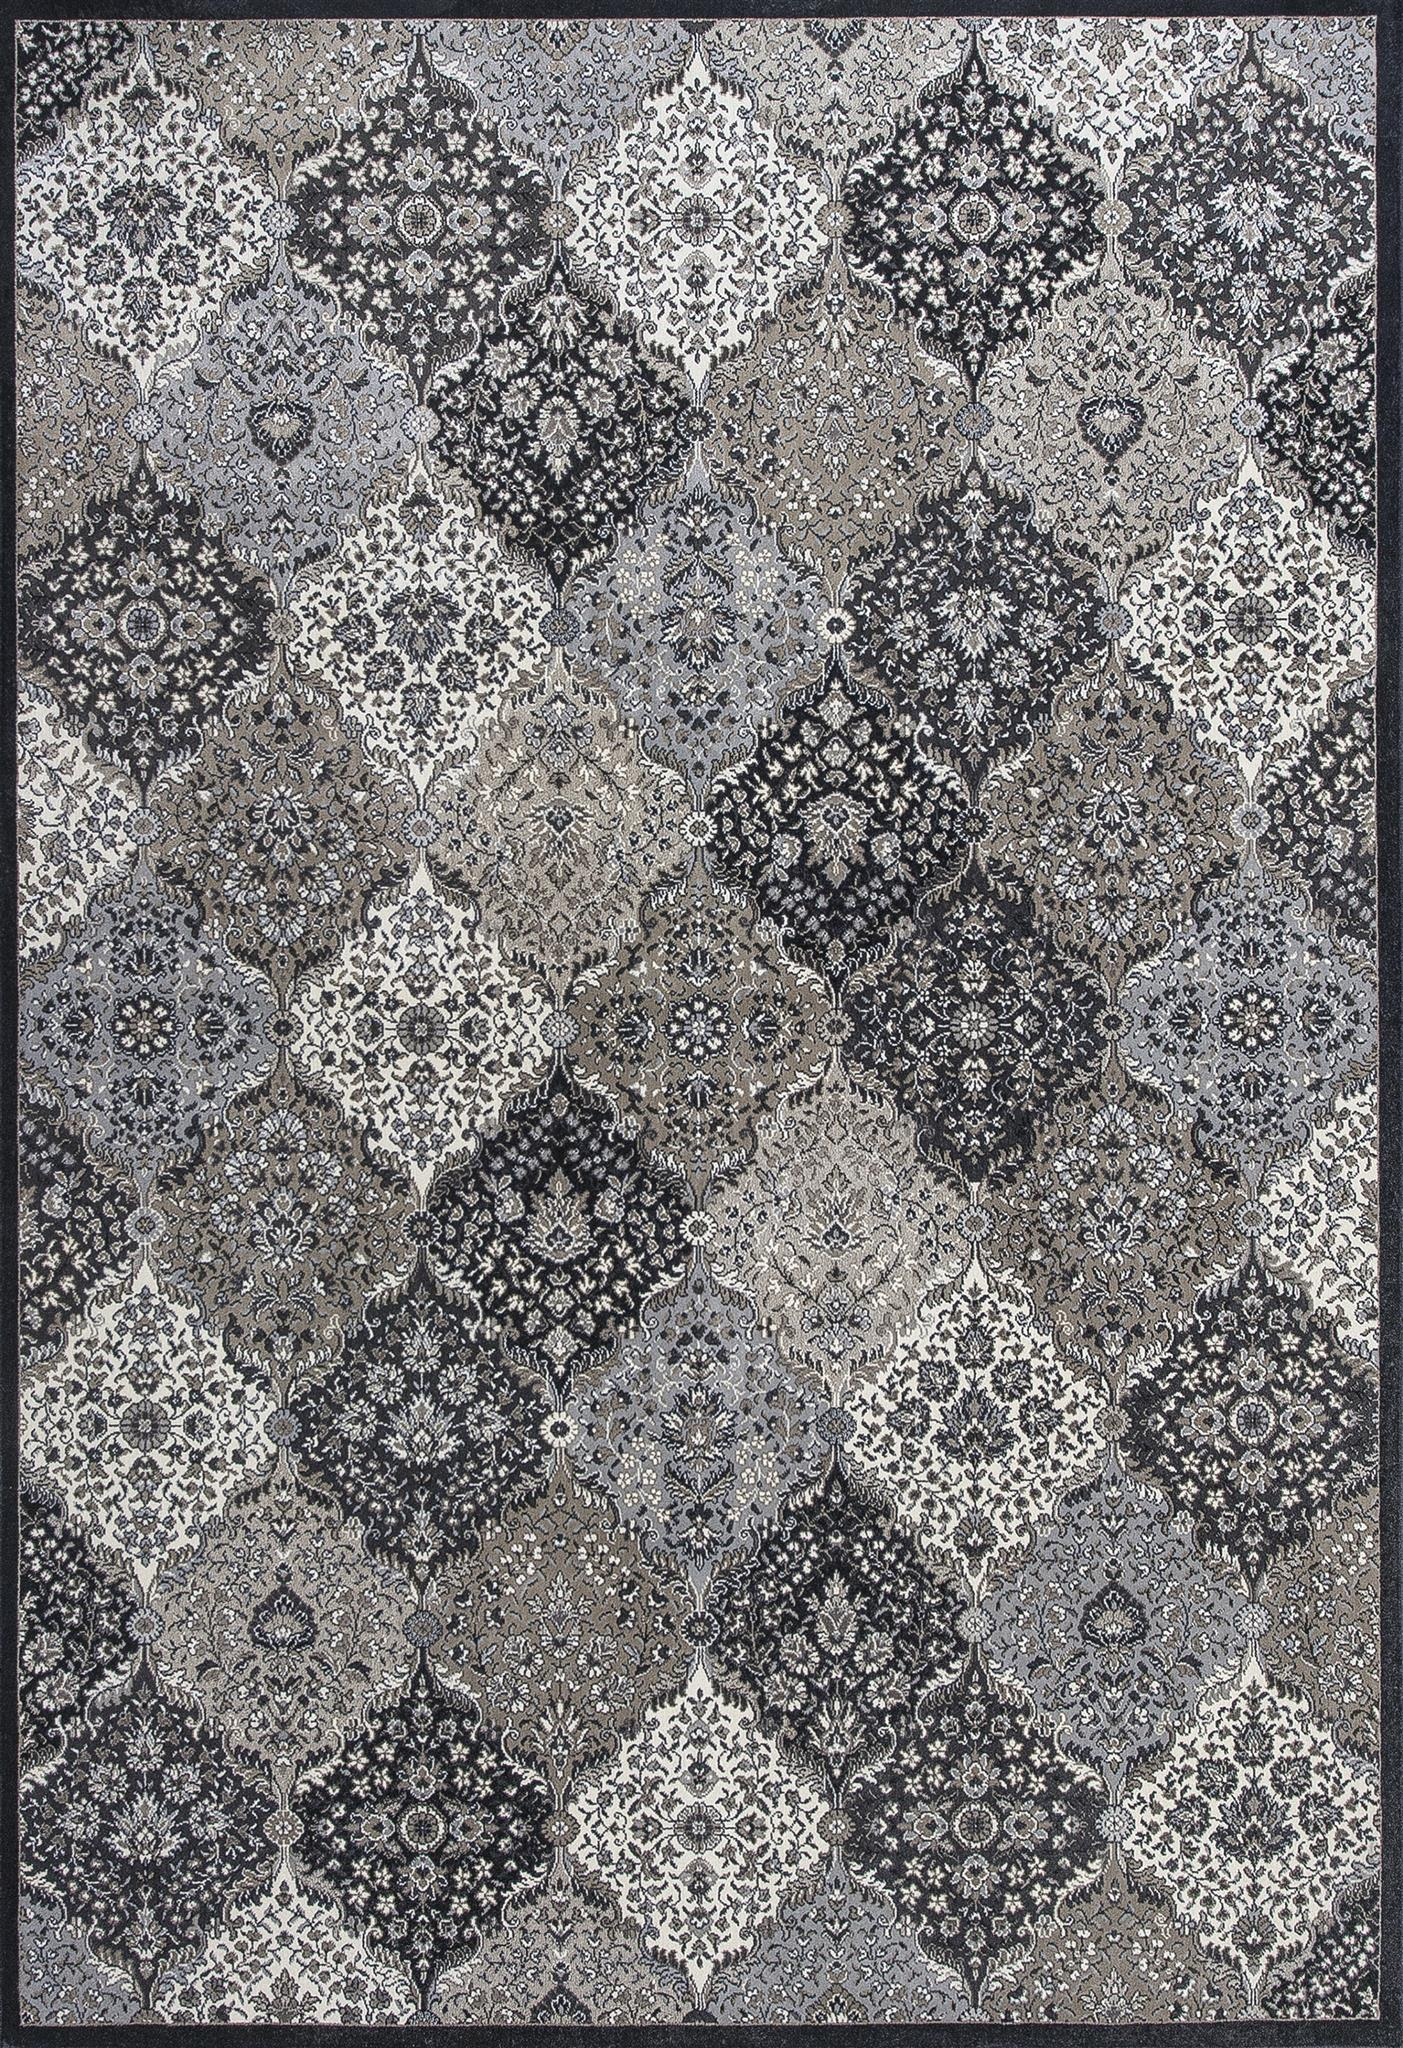 Montecarlo IV 5131 Metallic Borderless Kashan